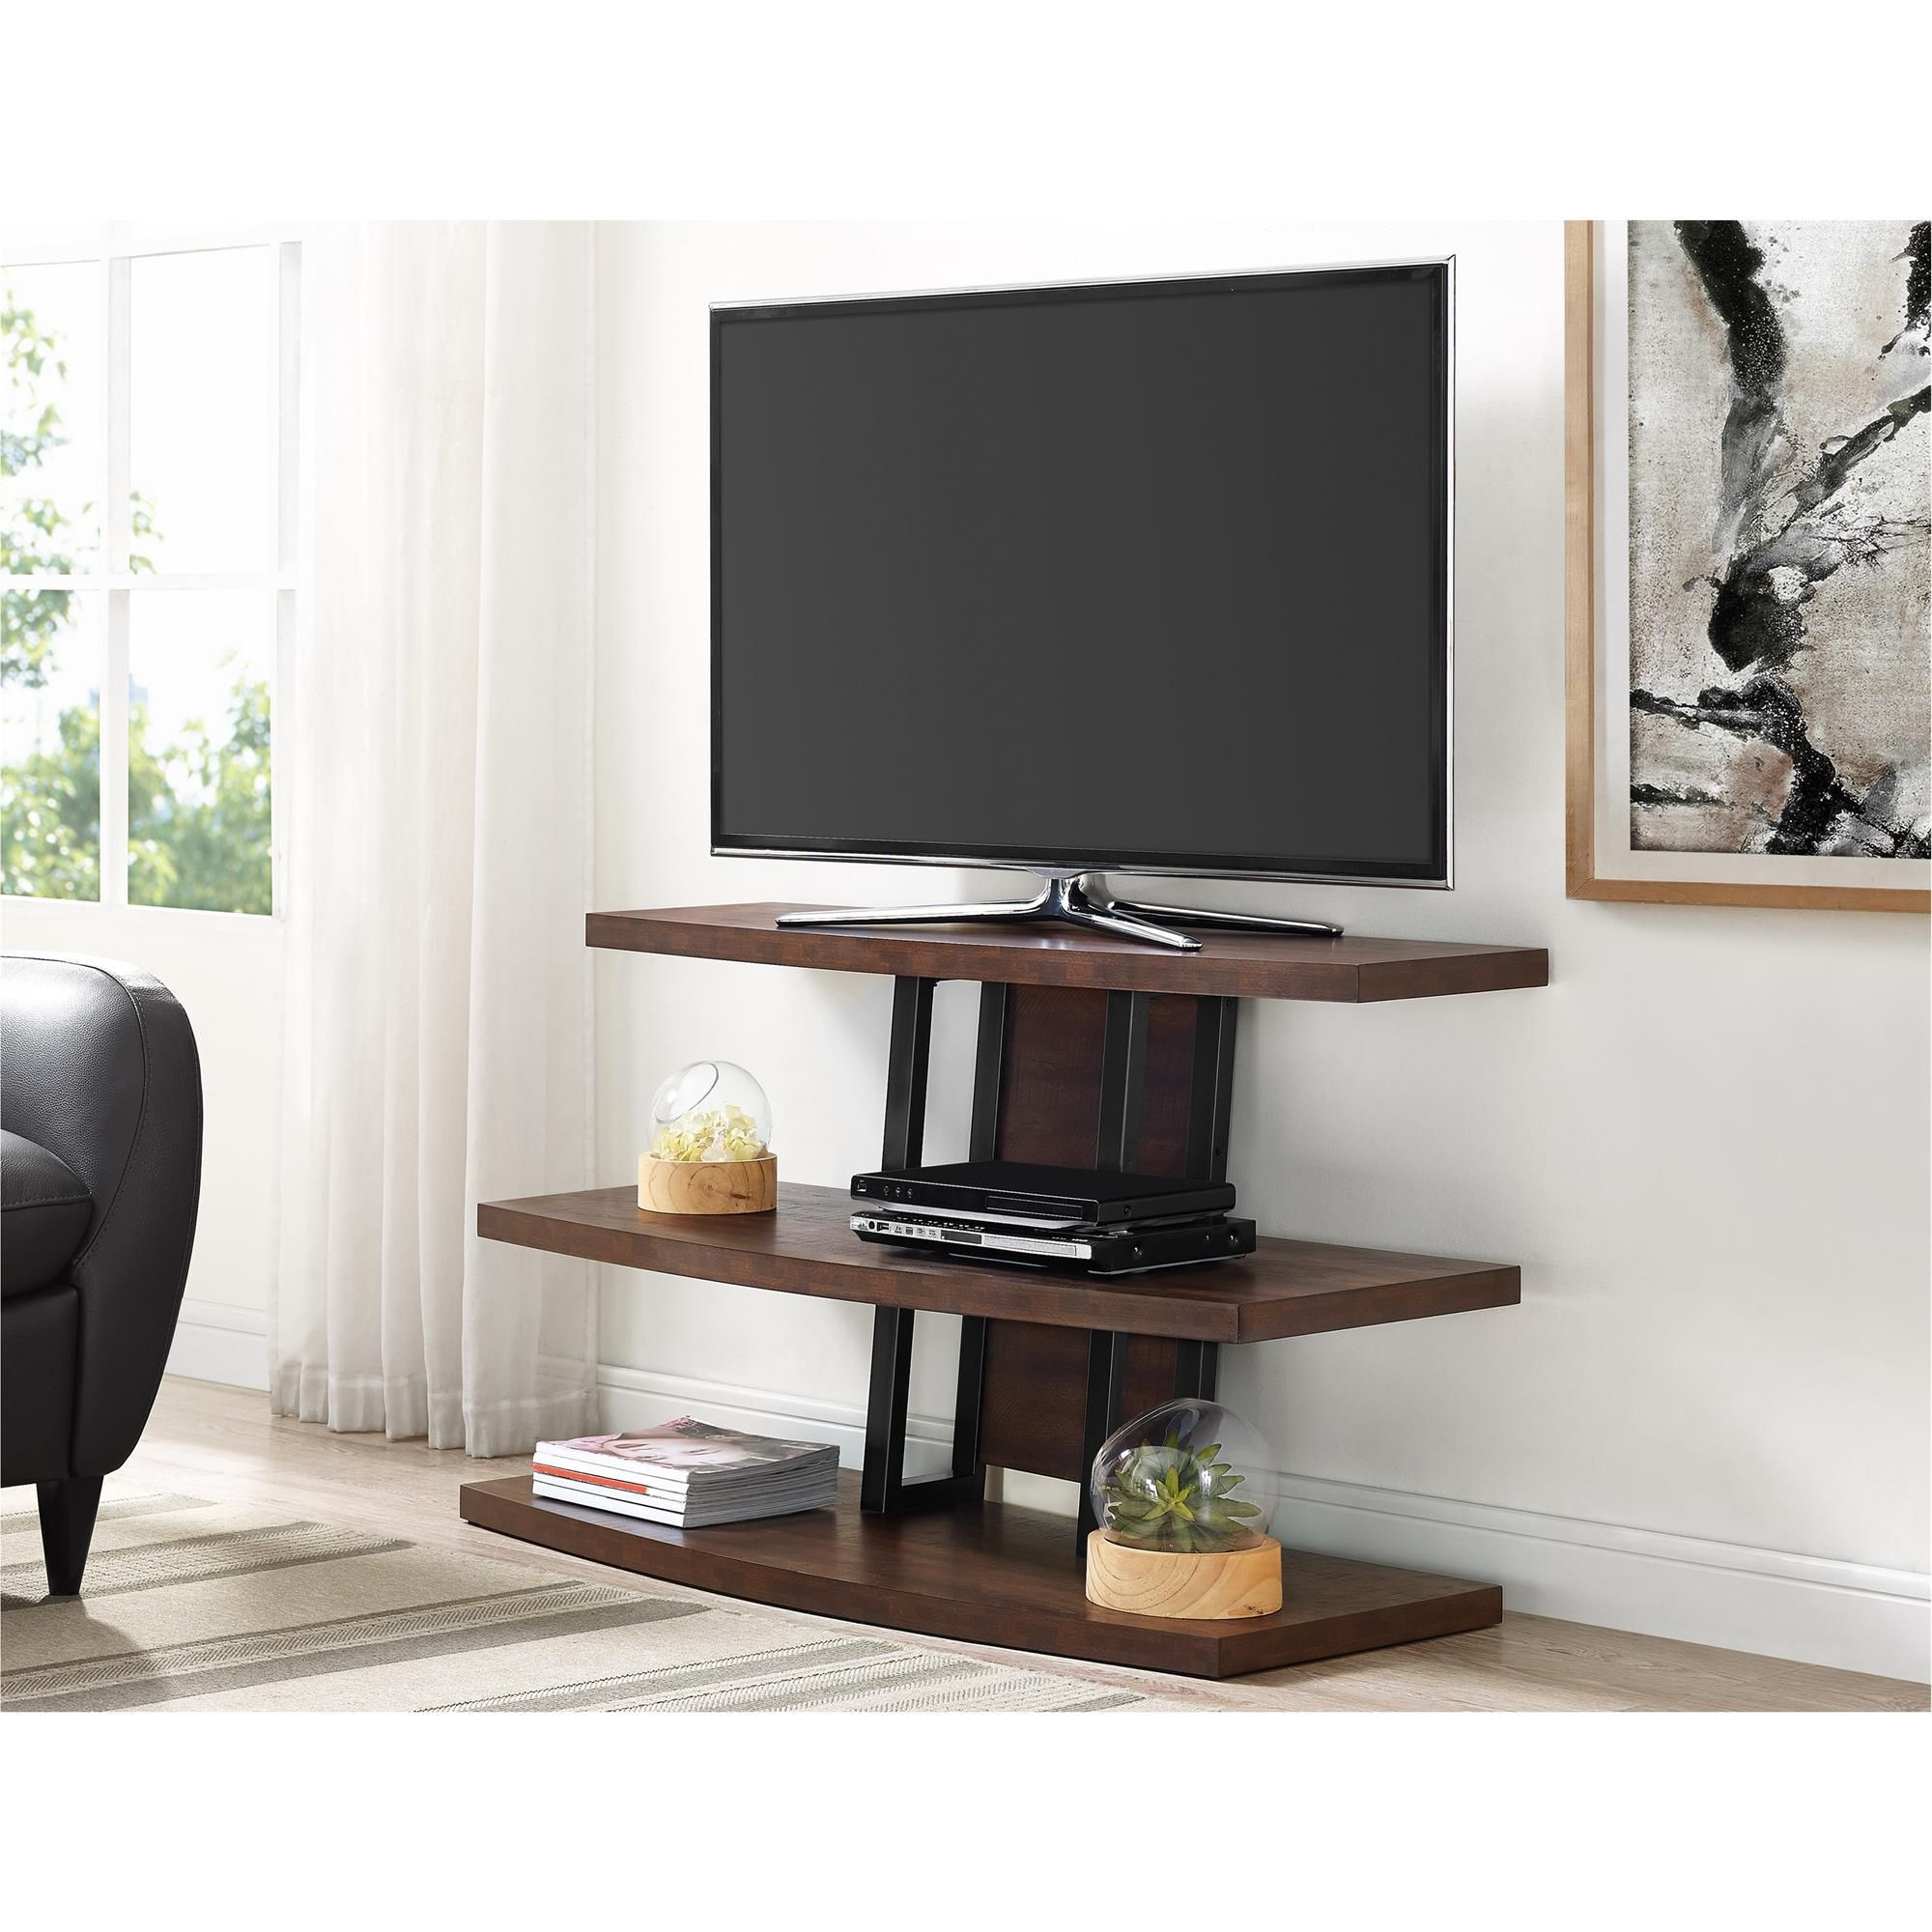 Favorite 20+ Best Tv Stand Ideas & Remodel Pictures For Your Home (Gallery 2 of 20)